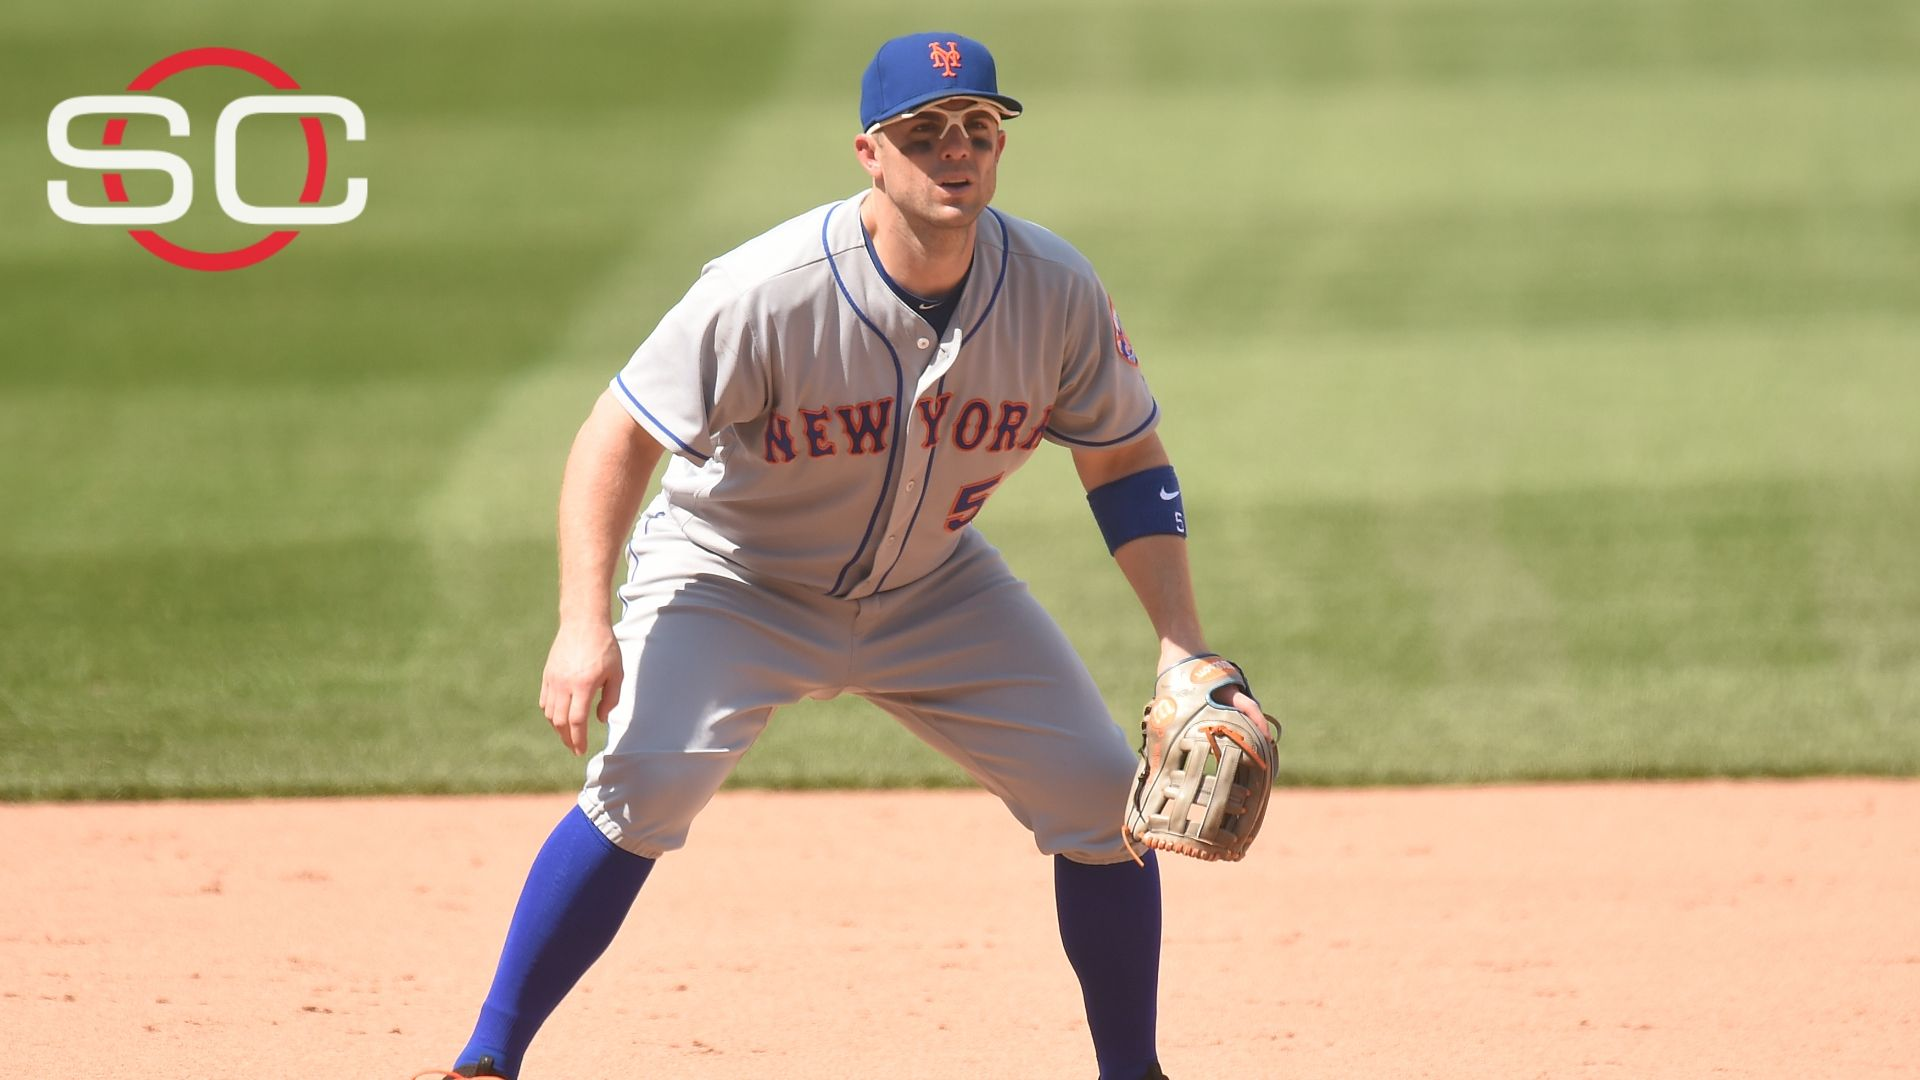 No timetable for Wright's return from neck surgery